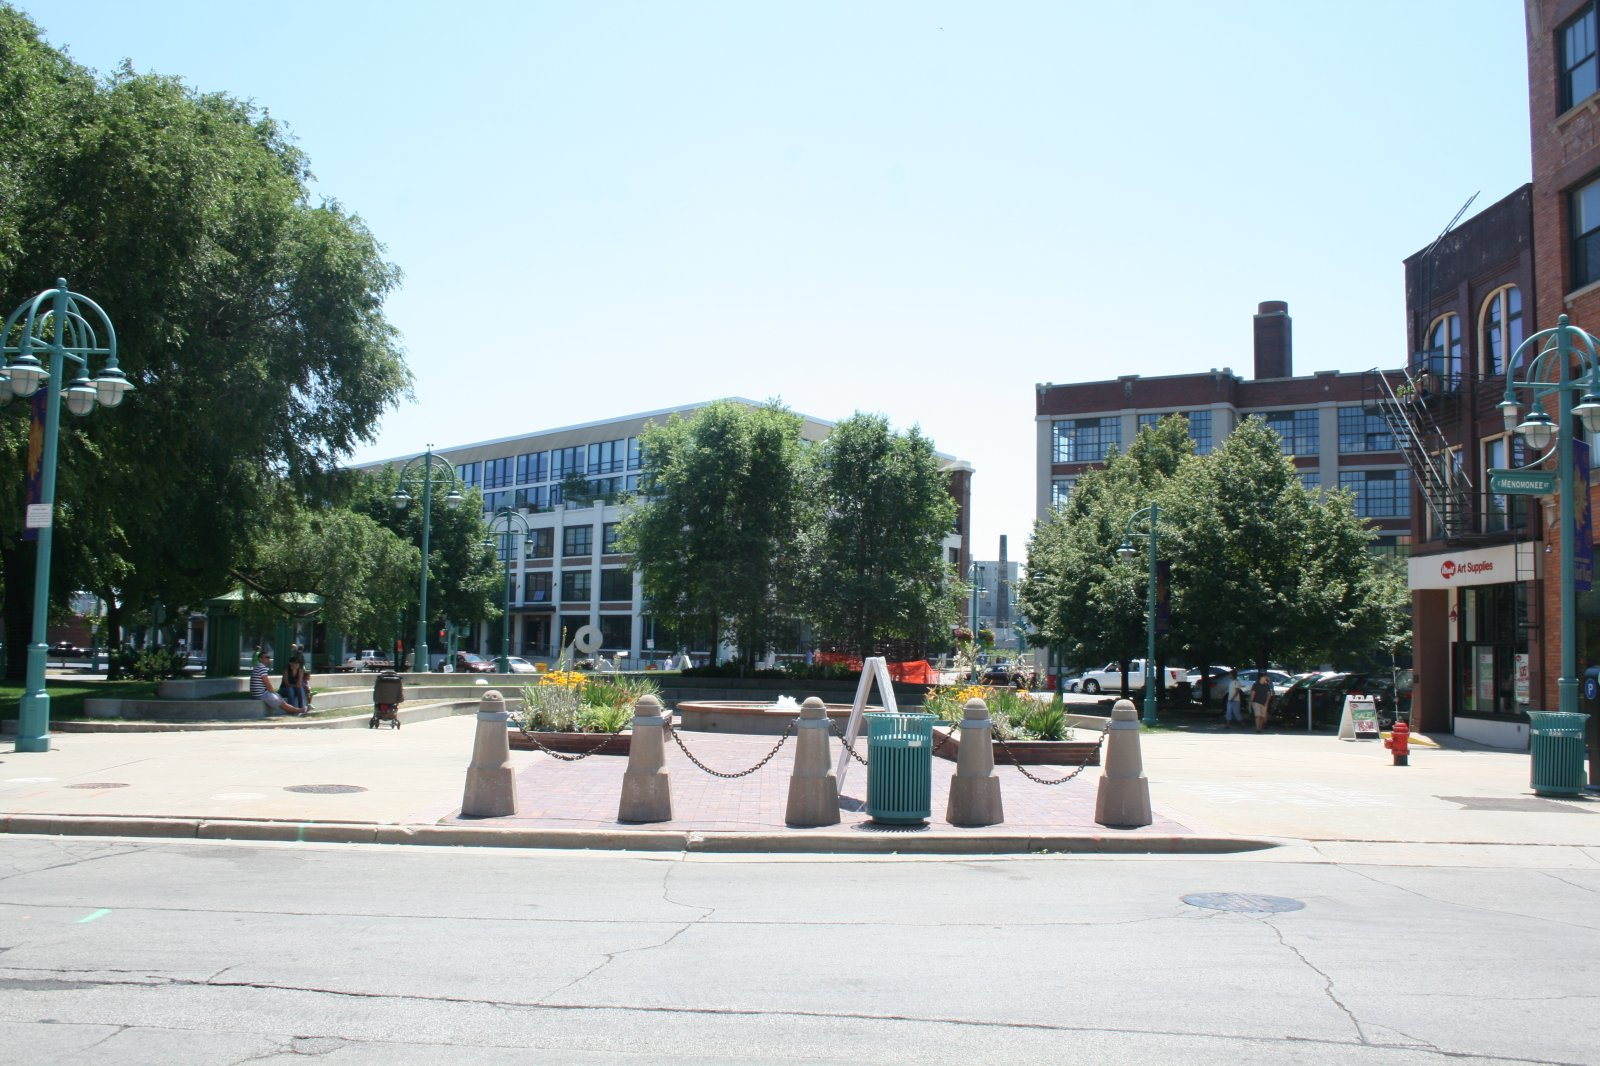 Catalano Square from the North